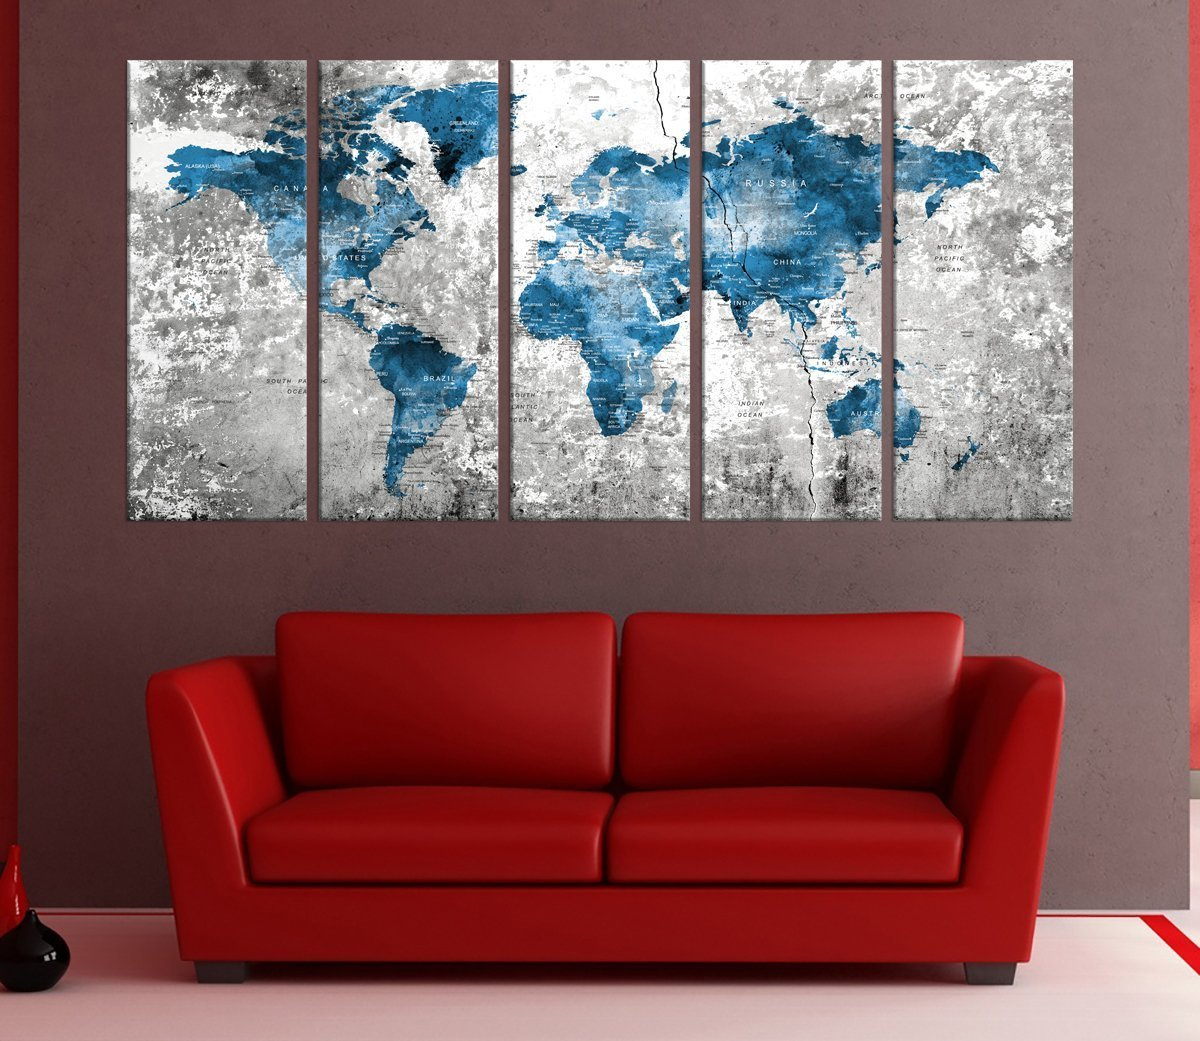 Amazon.com: Blue Push Pin Wolrd Map Wall Art Framed, 5 Panel ...